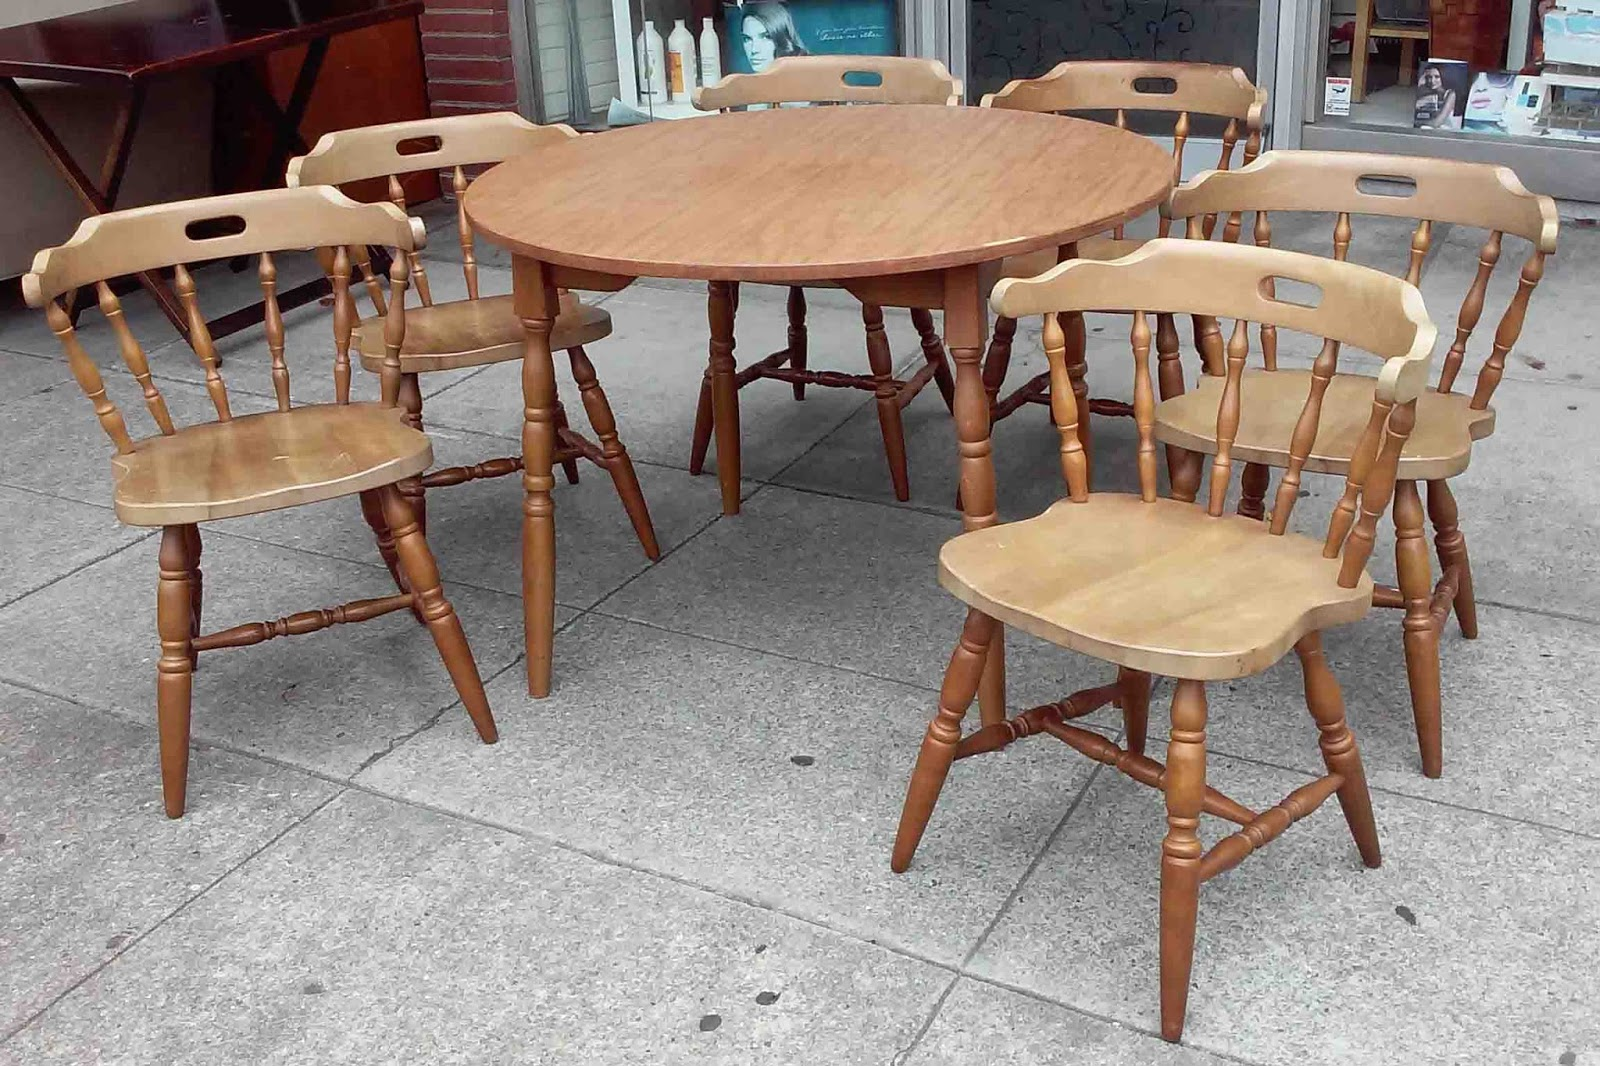 UHURU FURNITURE & COLLECTIBLES SOLD Round Table With 6